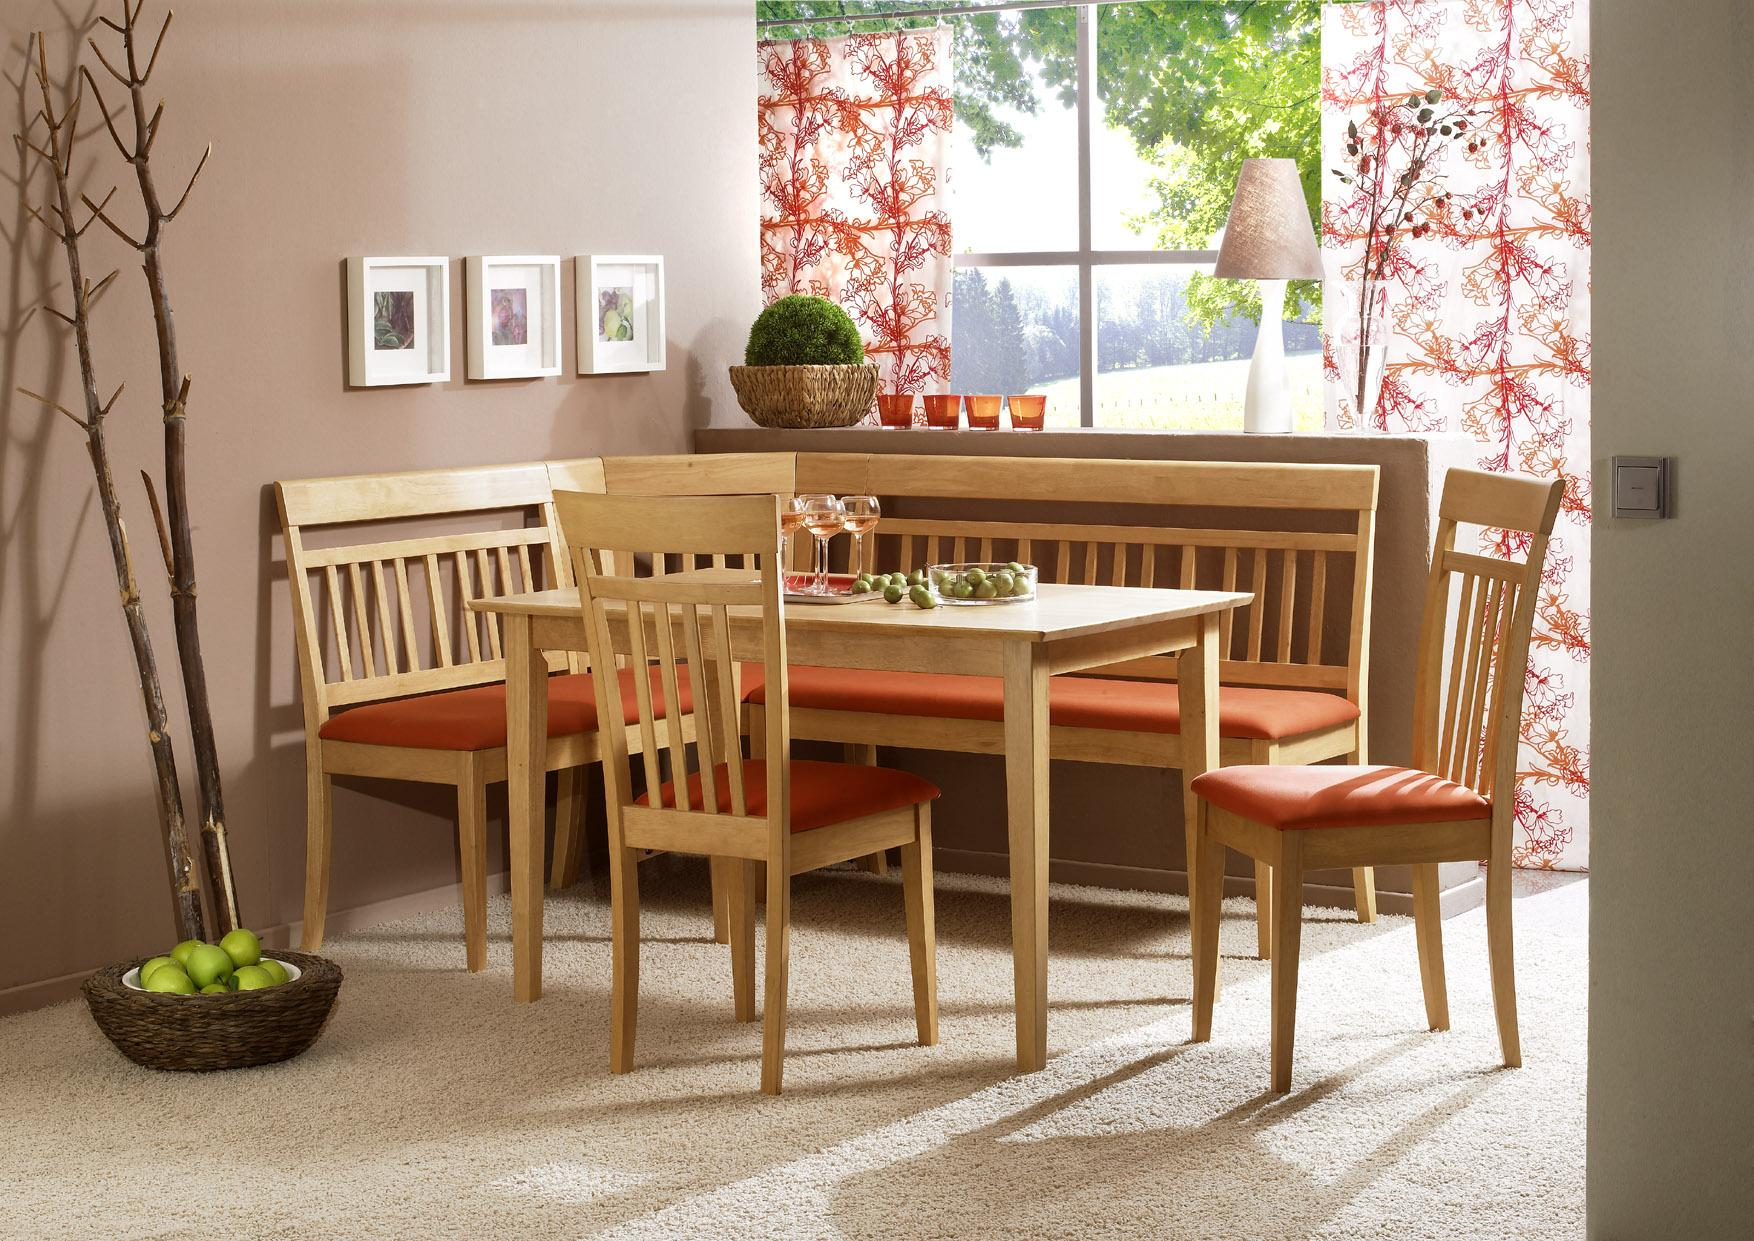 Kitchen table set with bench photo - 2